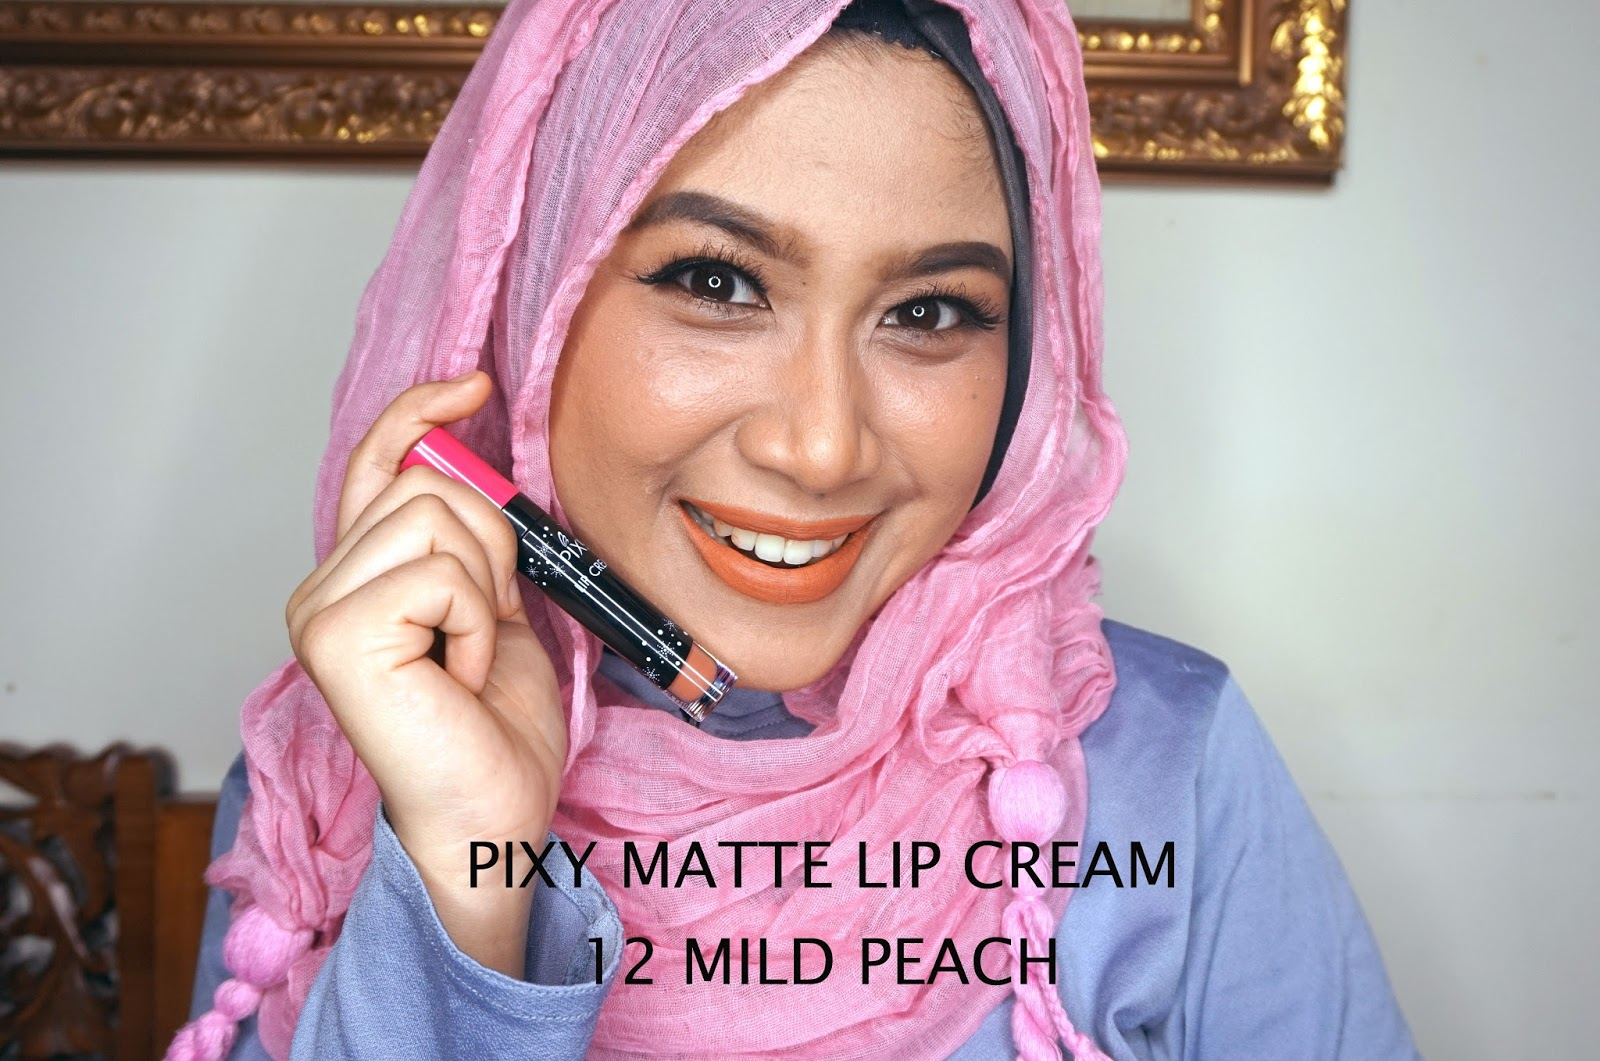 PIXY MATTE LIP CREAM NUDE SERIES